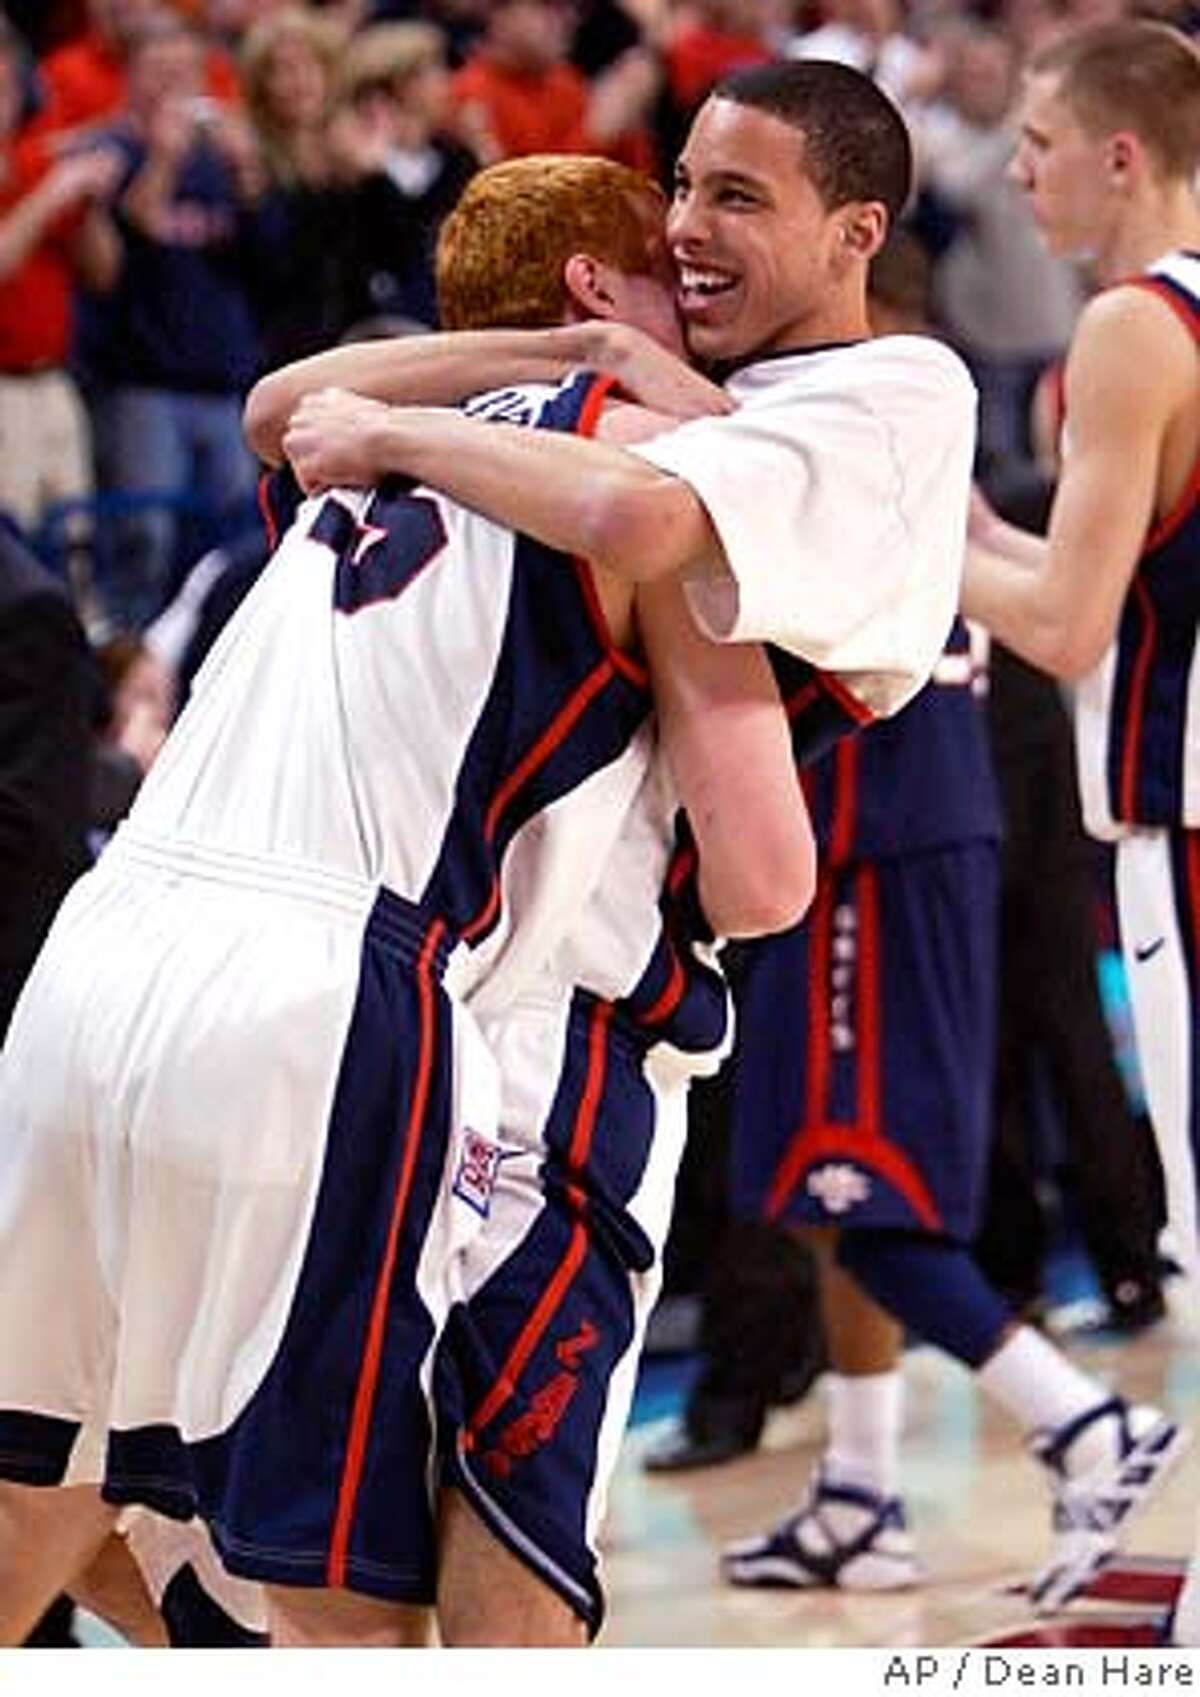 ###Live Caption:Gonzaga players David Pendergraft, left, and Austin Daye celebrate after defeating Saint Mary's 88-76 in a college basketball game Saturday March 1, 2008 at the McCarthey Athletic Center in Spokane, Wash. (AP Photo/Dean Hare)###Caption History:Gonzaga players David Pendergraft, left, and Austin Daye celebrate after defeating Saint Mary's 88-76 in a college basketball game Saturday March 1, 2008 at the McCarthey Athletic Center in Spokane, Wash. (AP Photo/Dean Hare)###Notes:Austin Daye, David Pendergraft###Special Instructions:EFE OUT